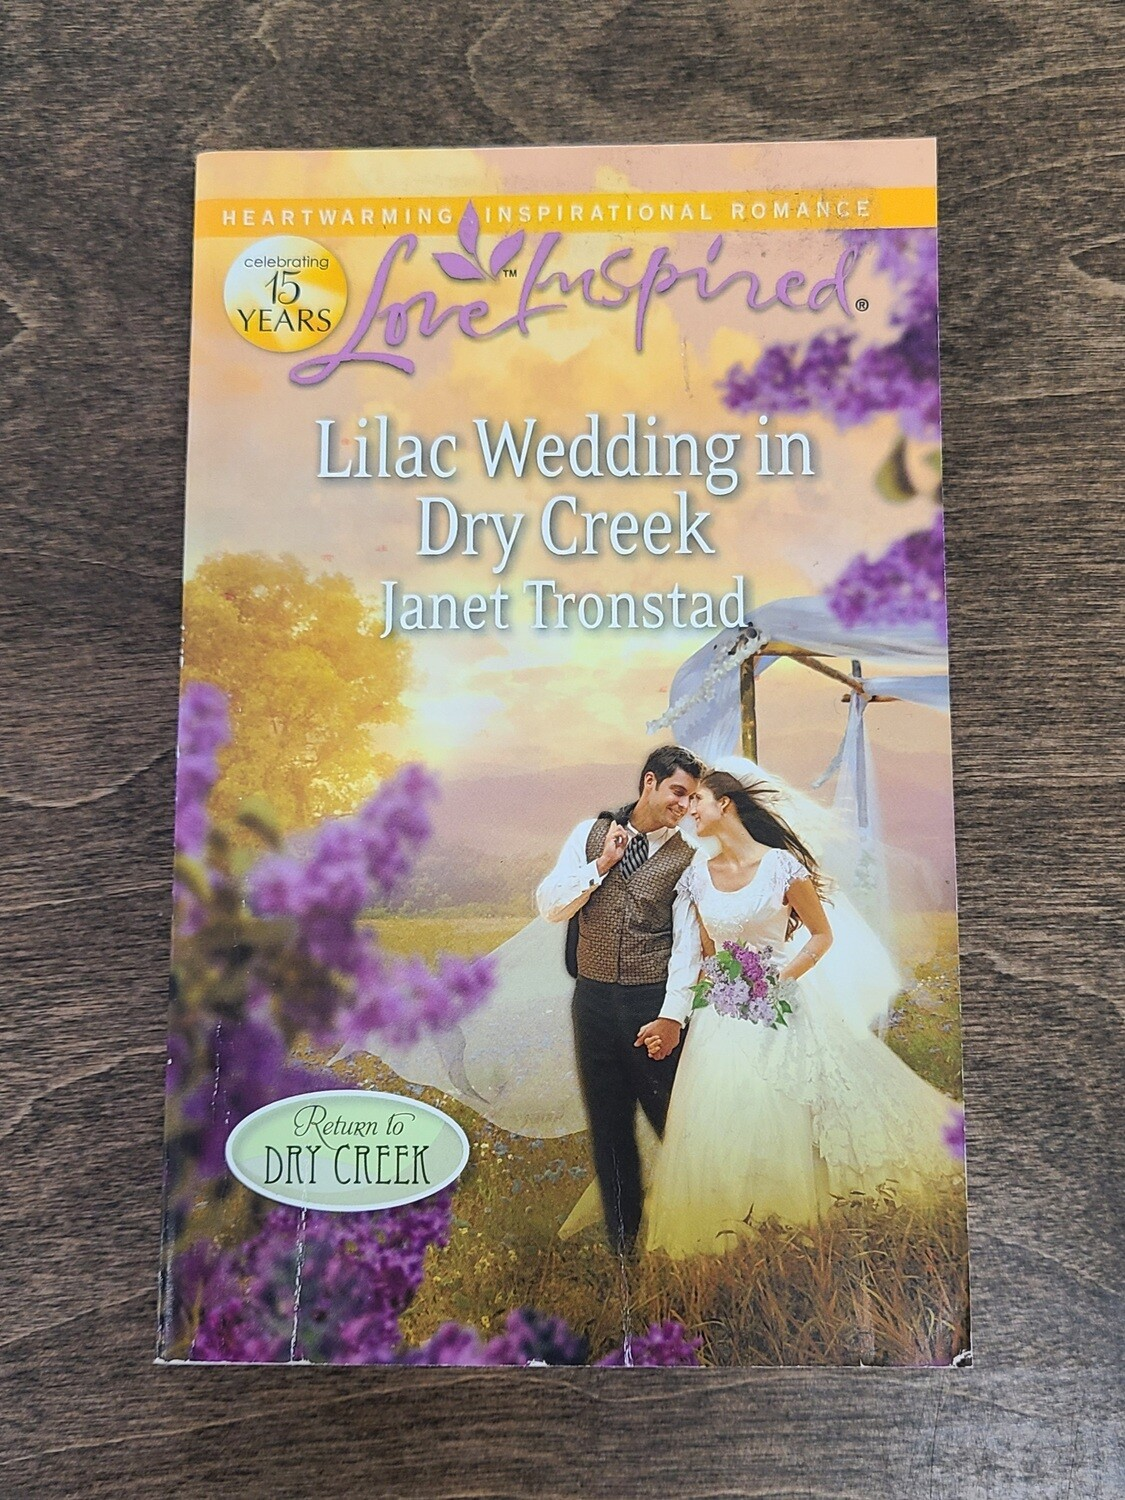 Lilac Wedding in Dry Creek by Janet Tronstad